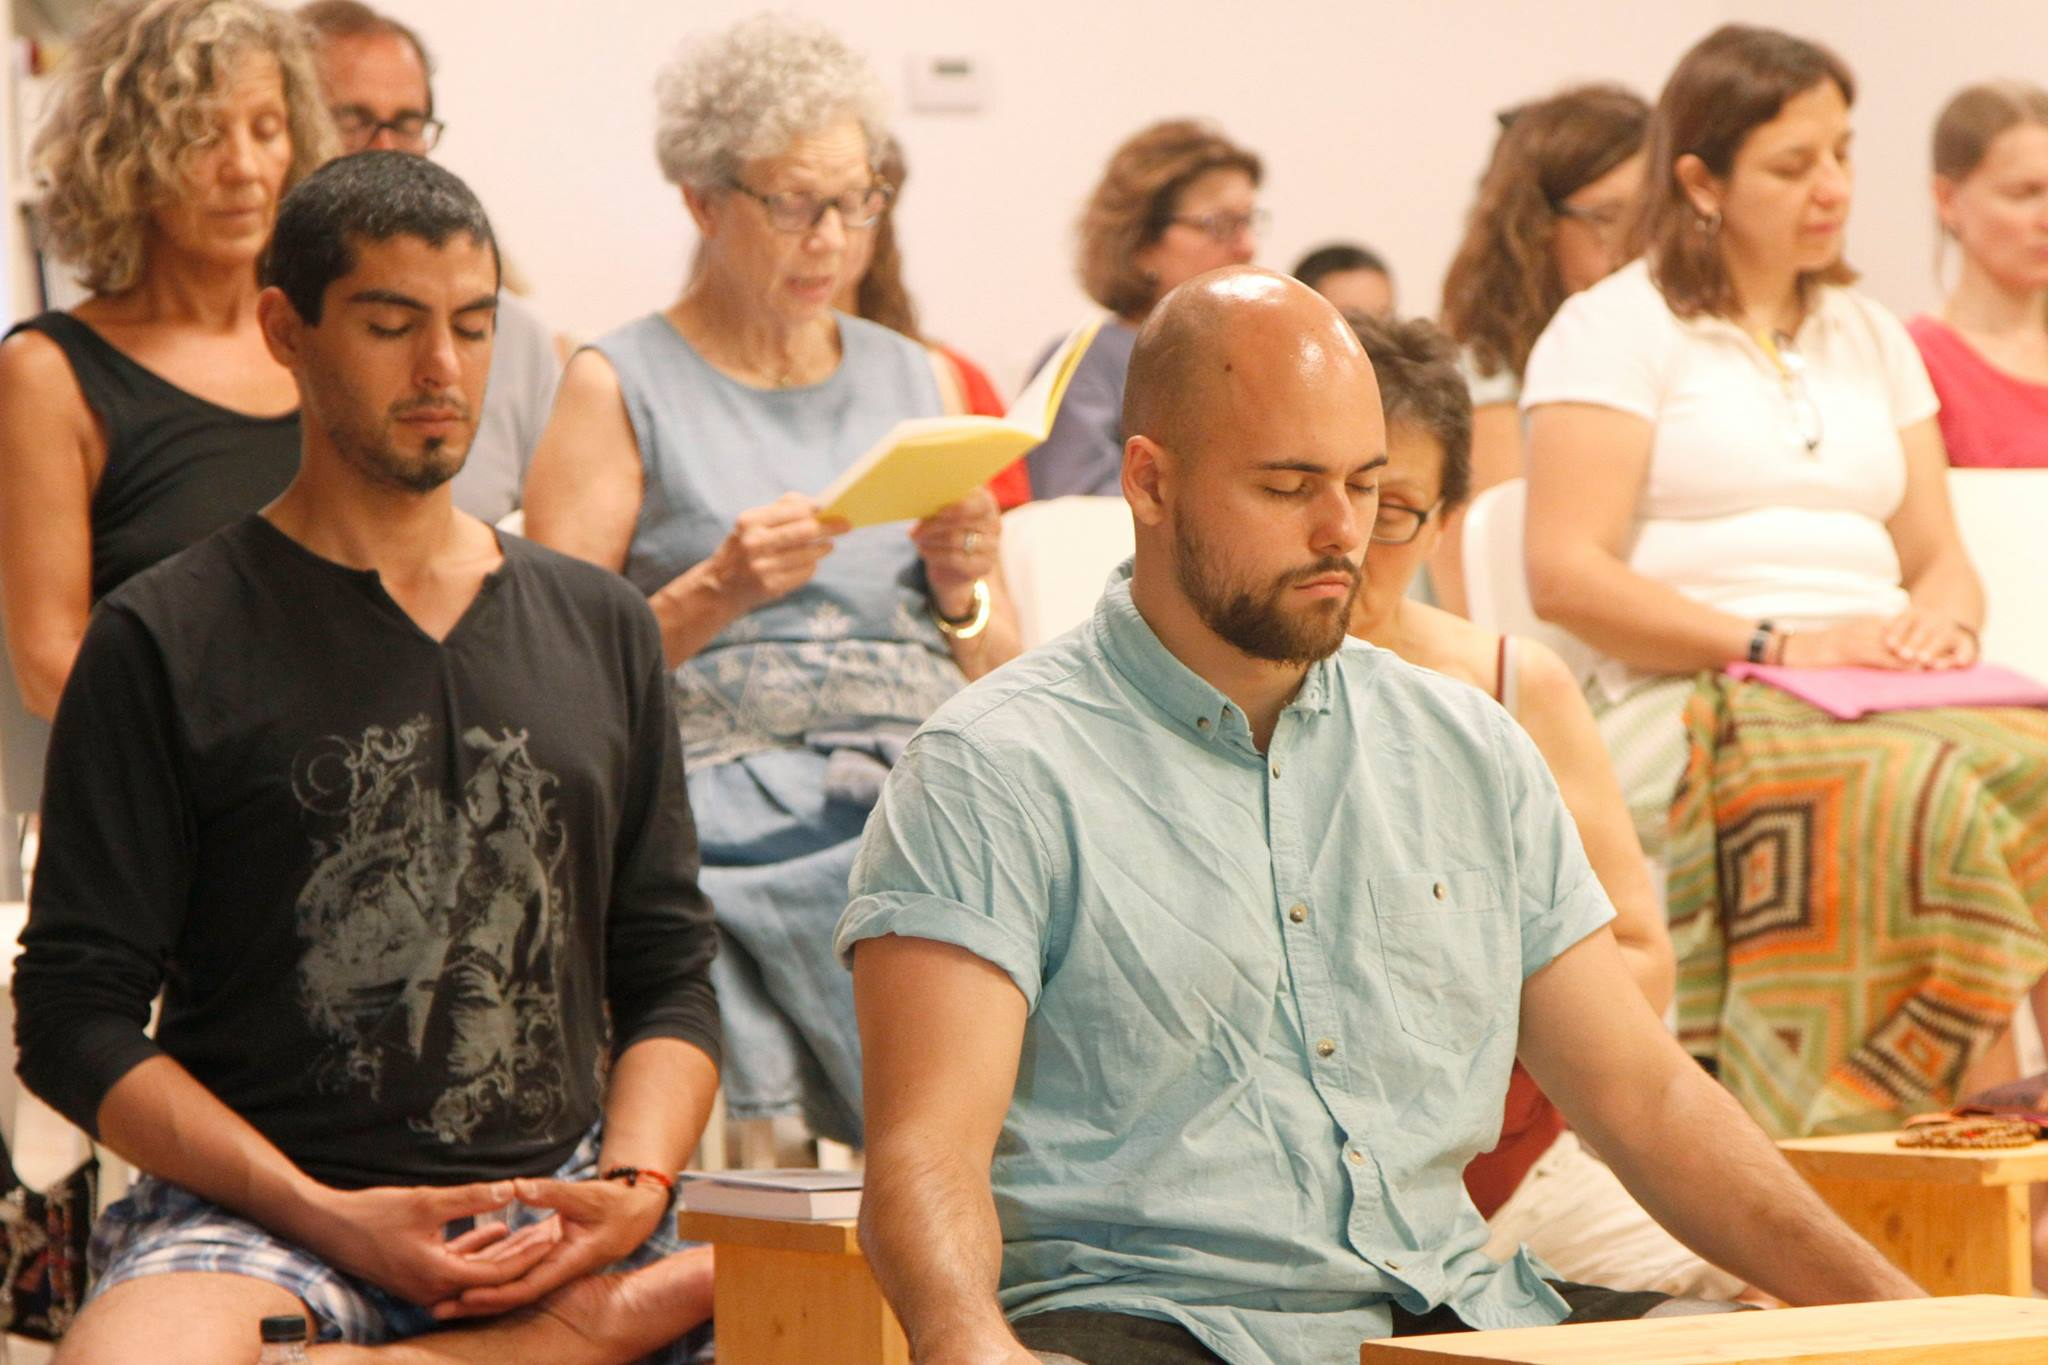 kadampa-meditation-center-barcelona-spain-9